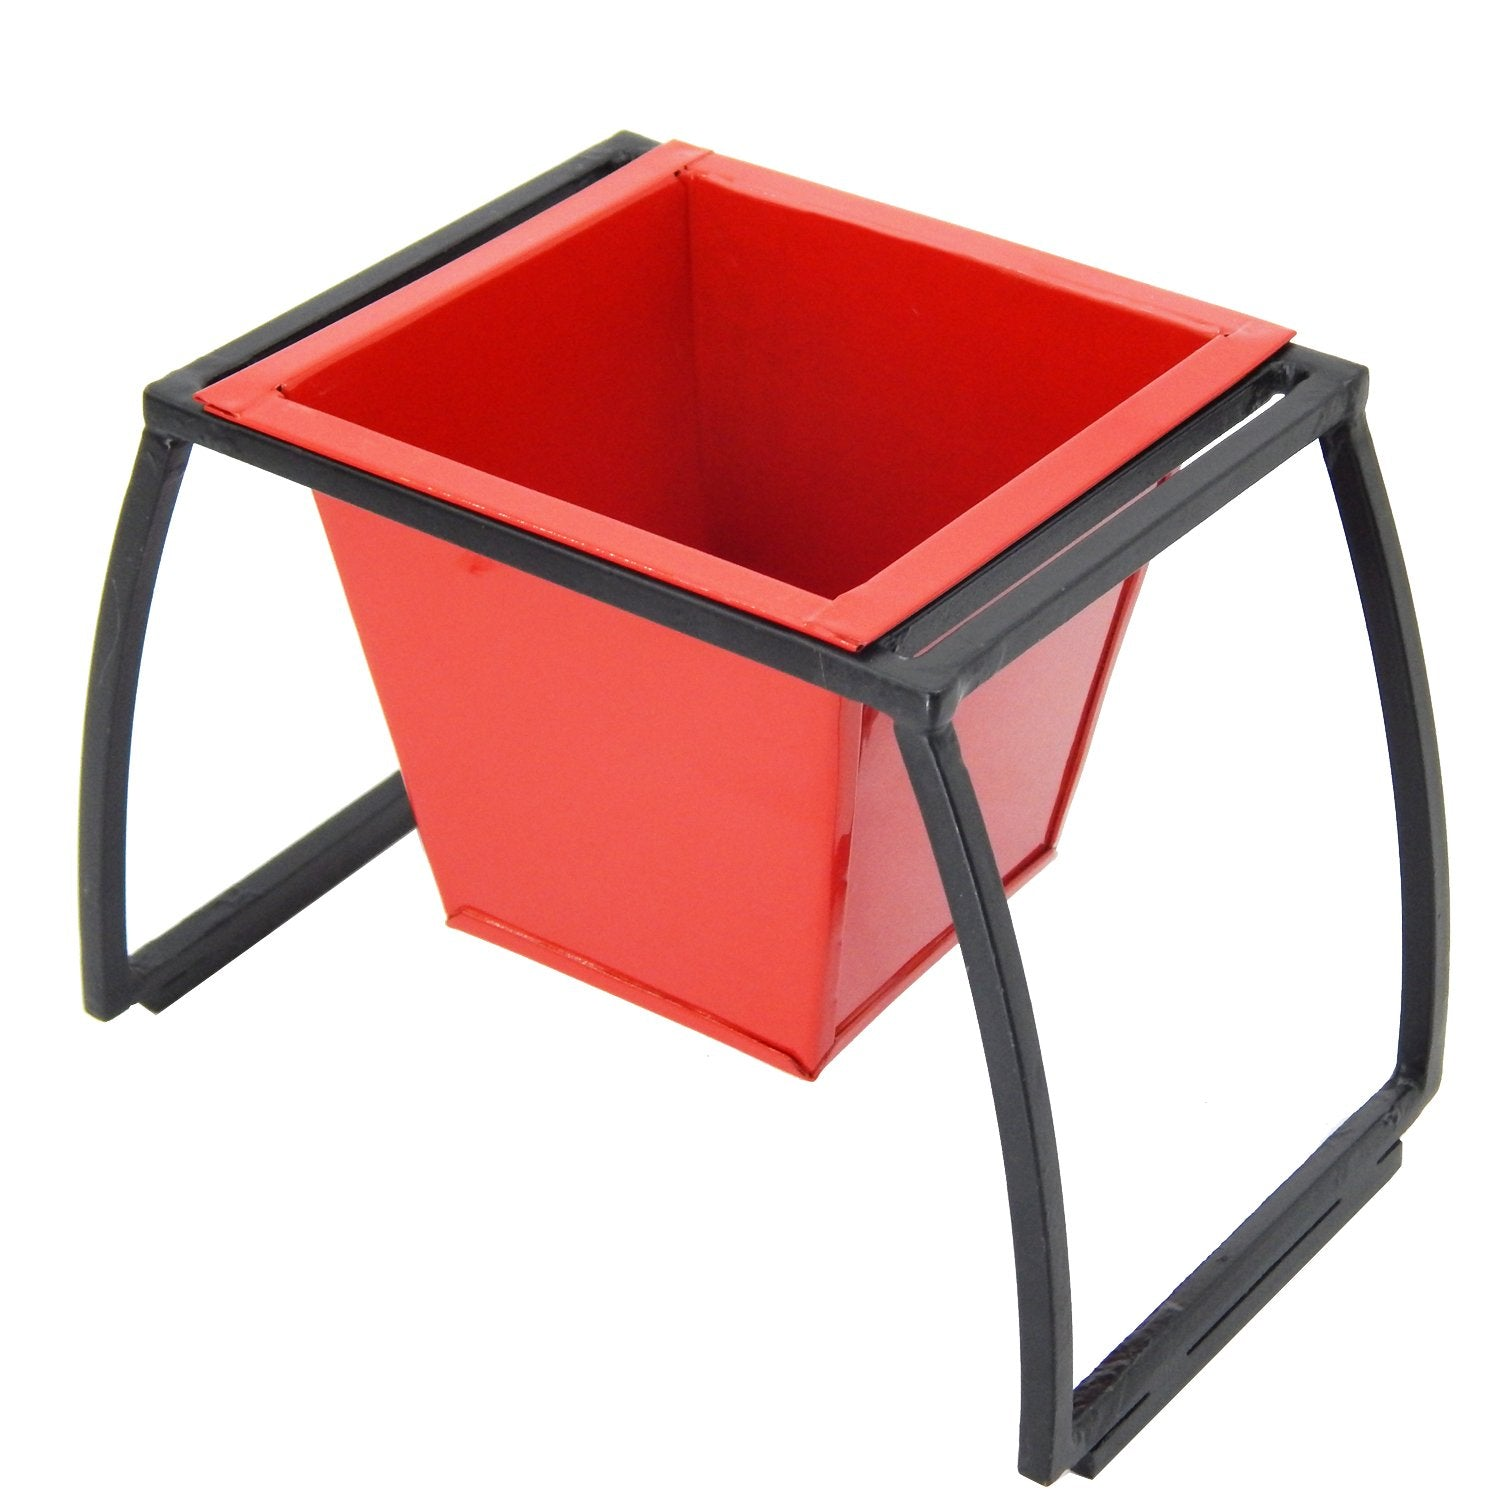 ecofynd Stackable Table Top Planter Pot with Metal Stand {WITHOUT PLANTS}, Red - Ecofynd Online Home and Garden Store